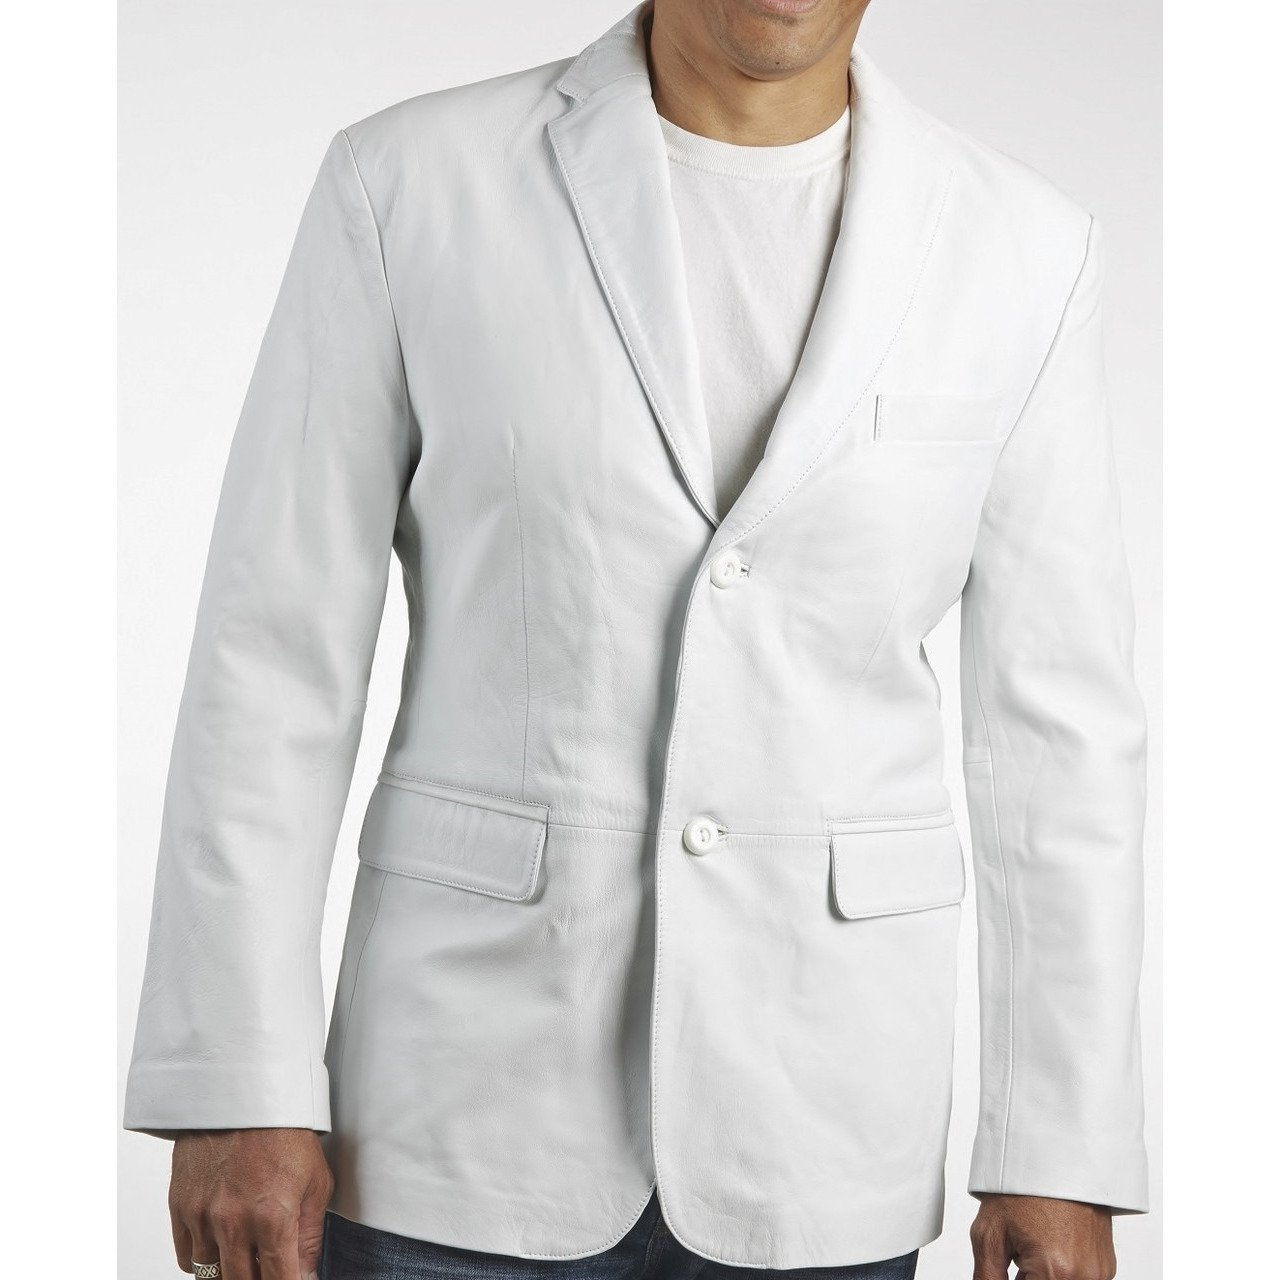 Mens Classic White Leather Blazer, [option2] - Fadcloset